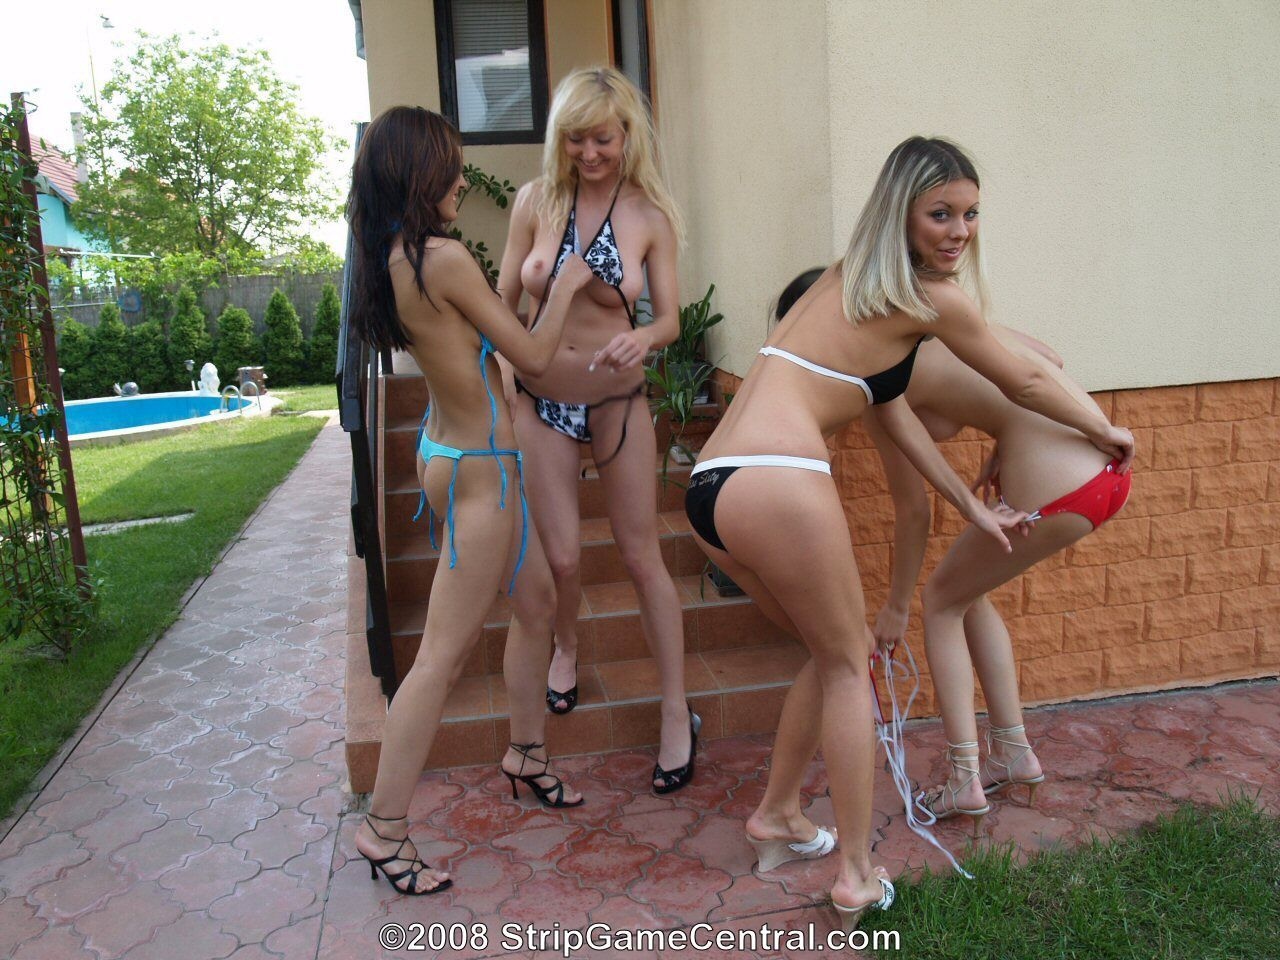 Four Girls Naked girl strip fighting . adult images. comments: 4